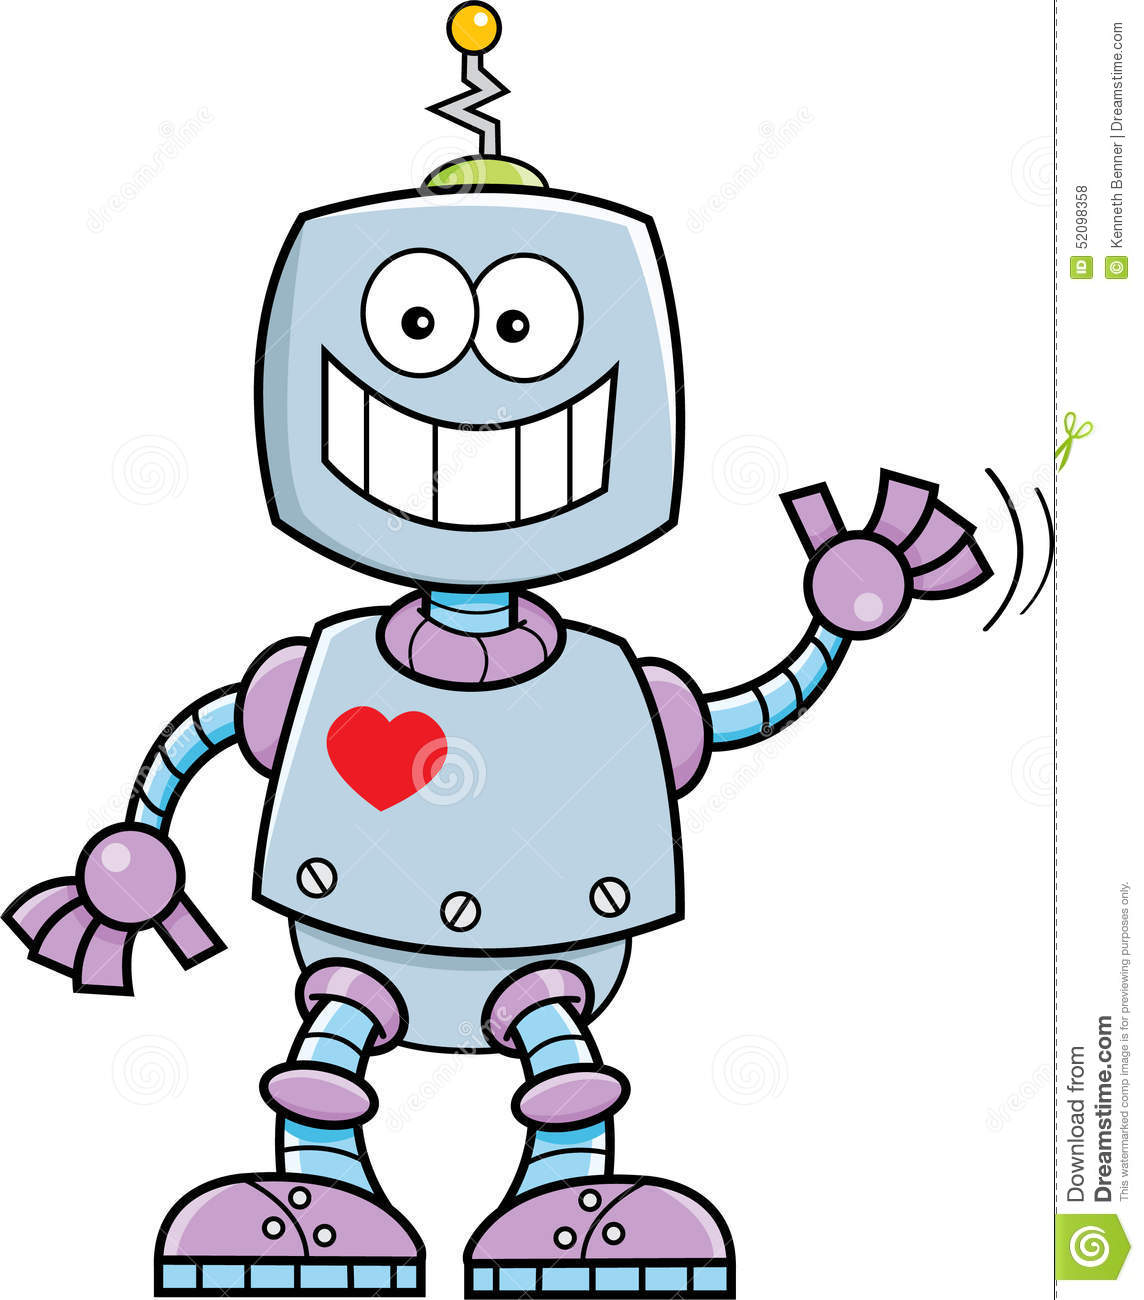 Smiling Robot Stock Vector Illustration And Royalty Free Smiling ...